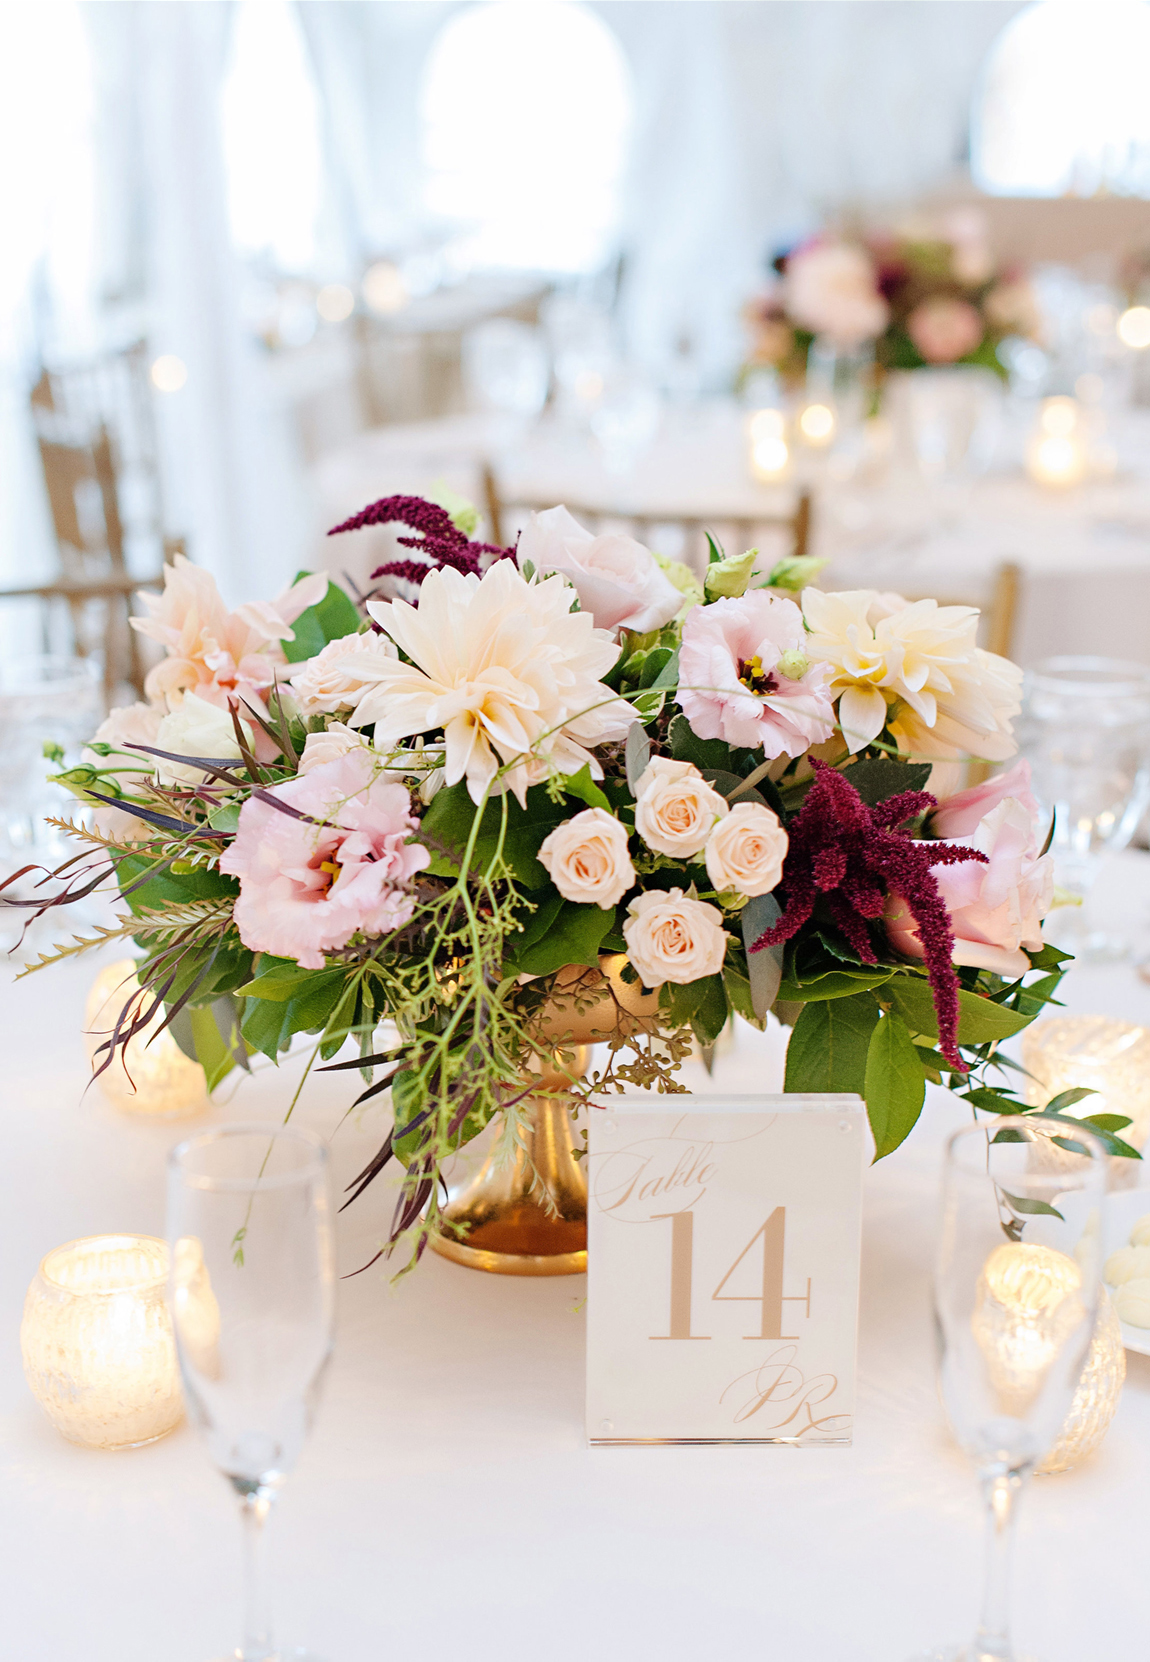 Low fresh flower wedding centerpiece in a gold pedestal with soft fall colors of white, blush, and pink with burgundy accents.